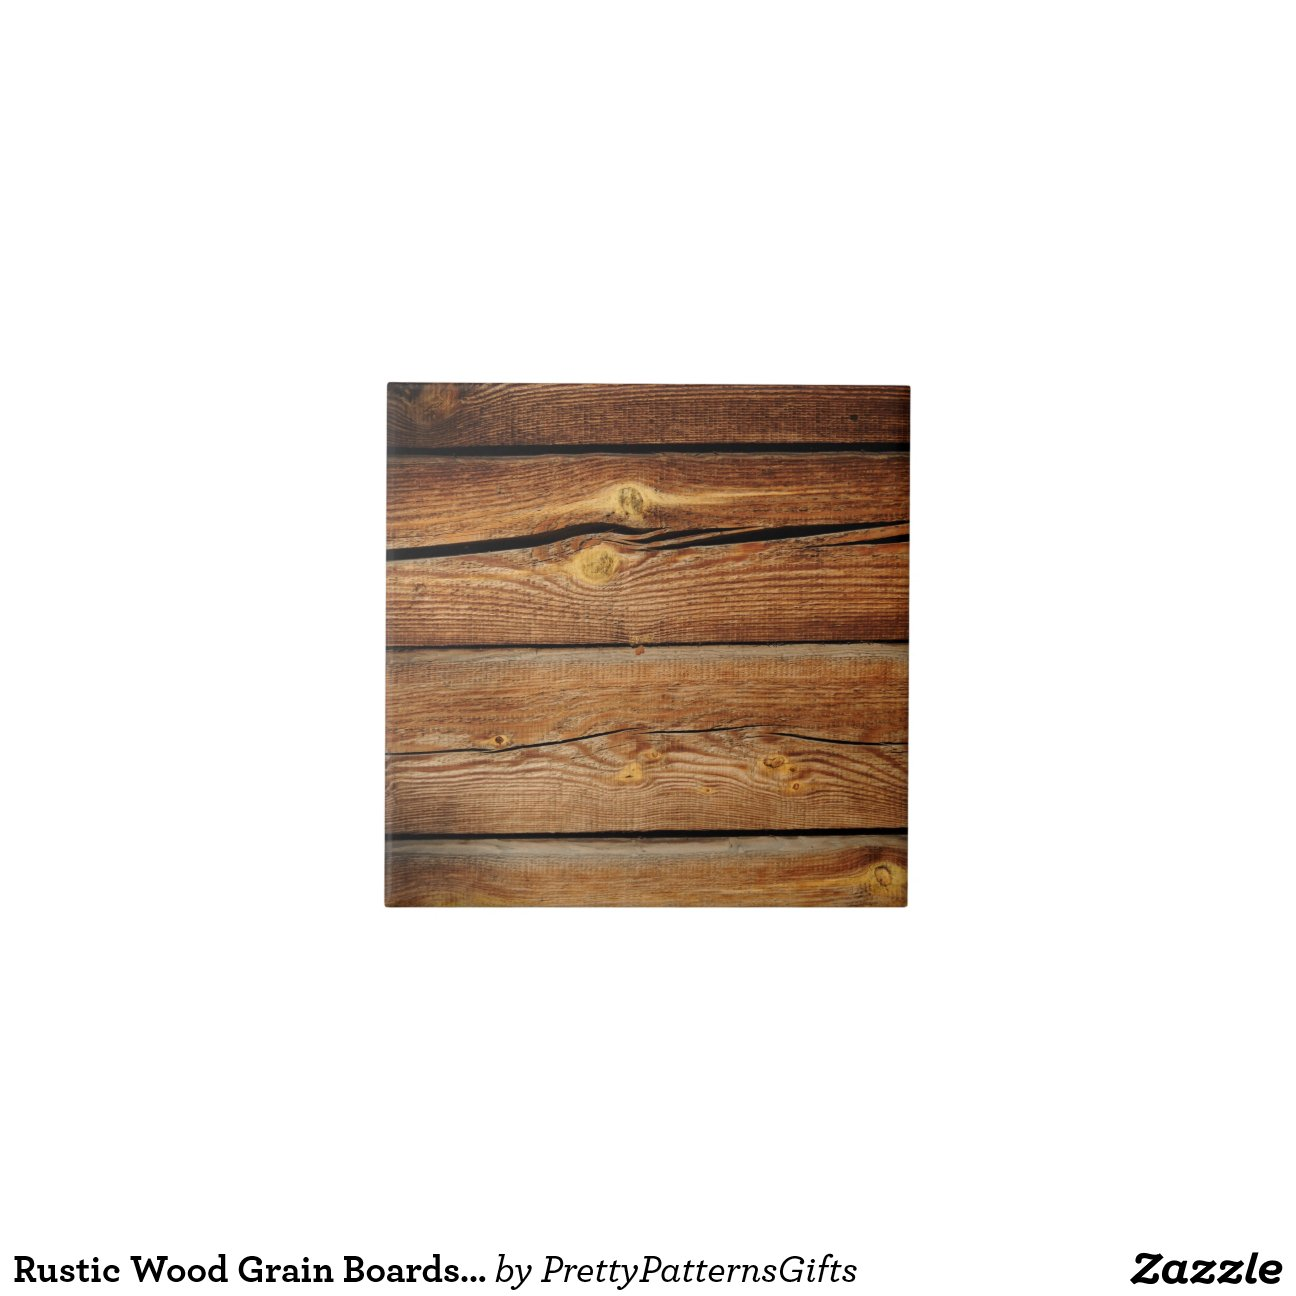 rustic wood grain boards design country gifts ceramic tile